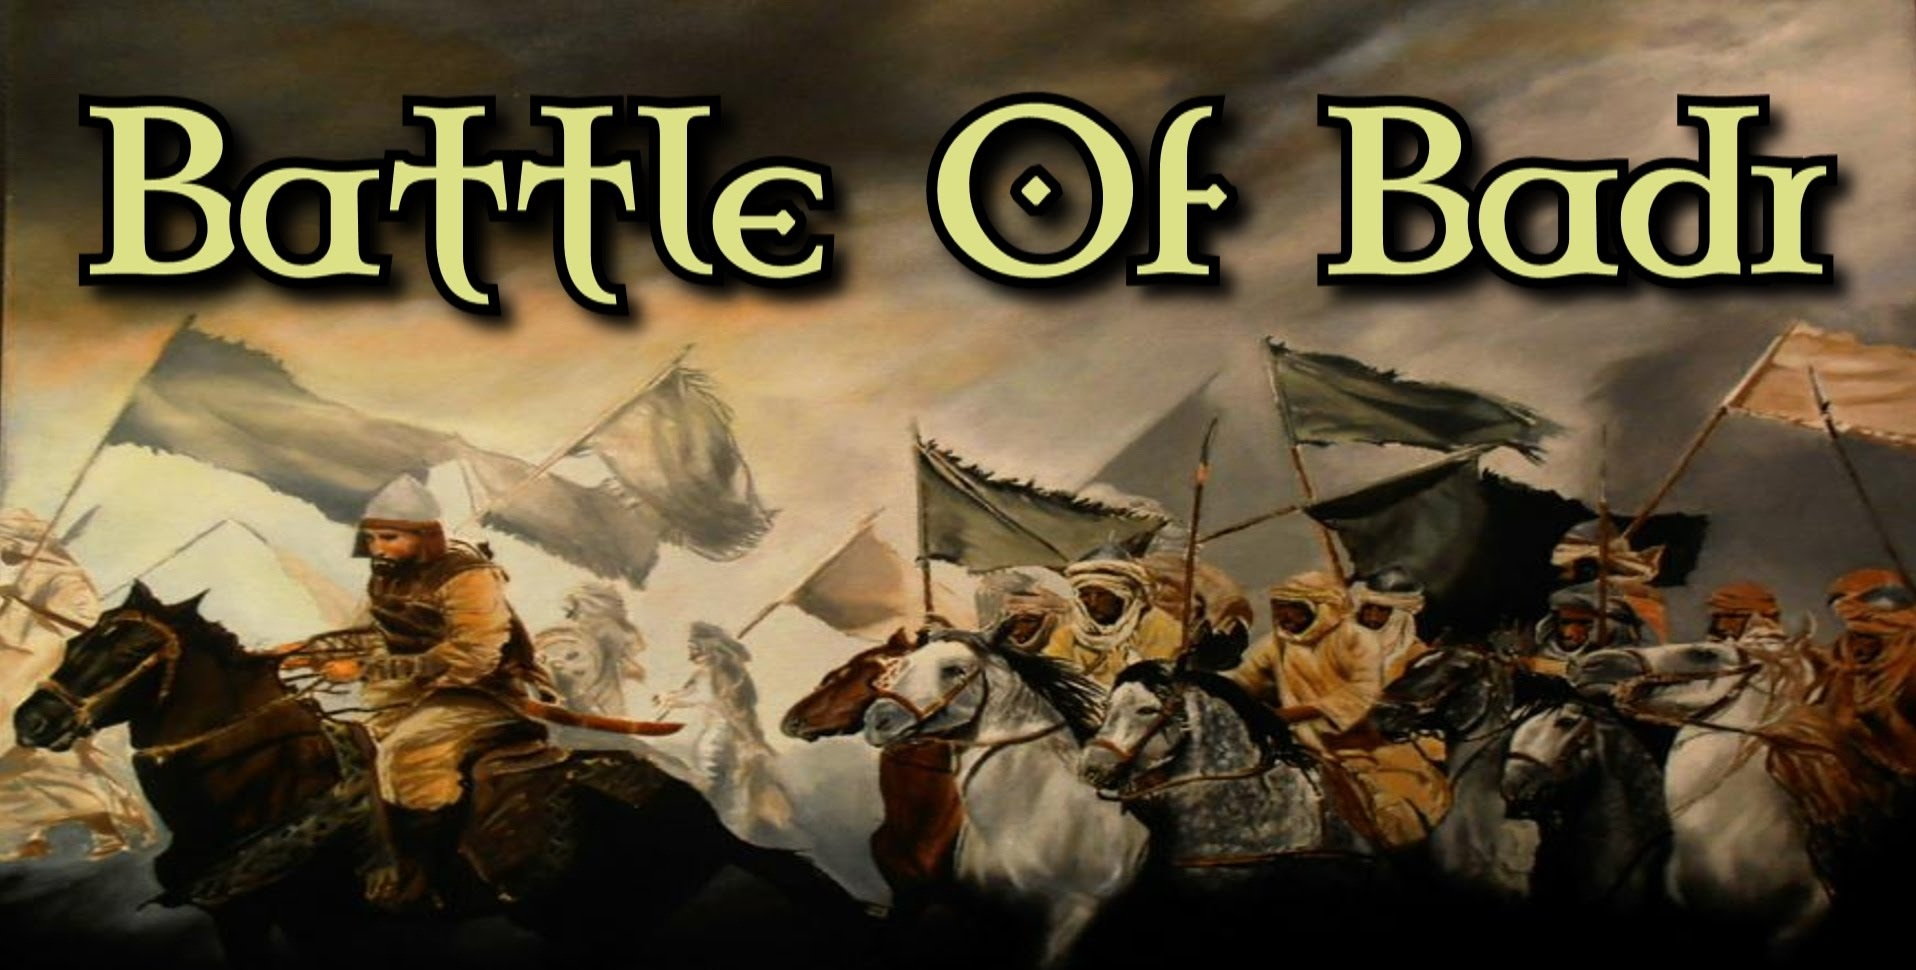 The Battle of Badr: When You Asked Allah for Help